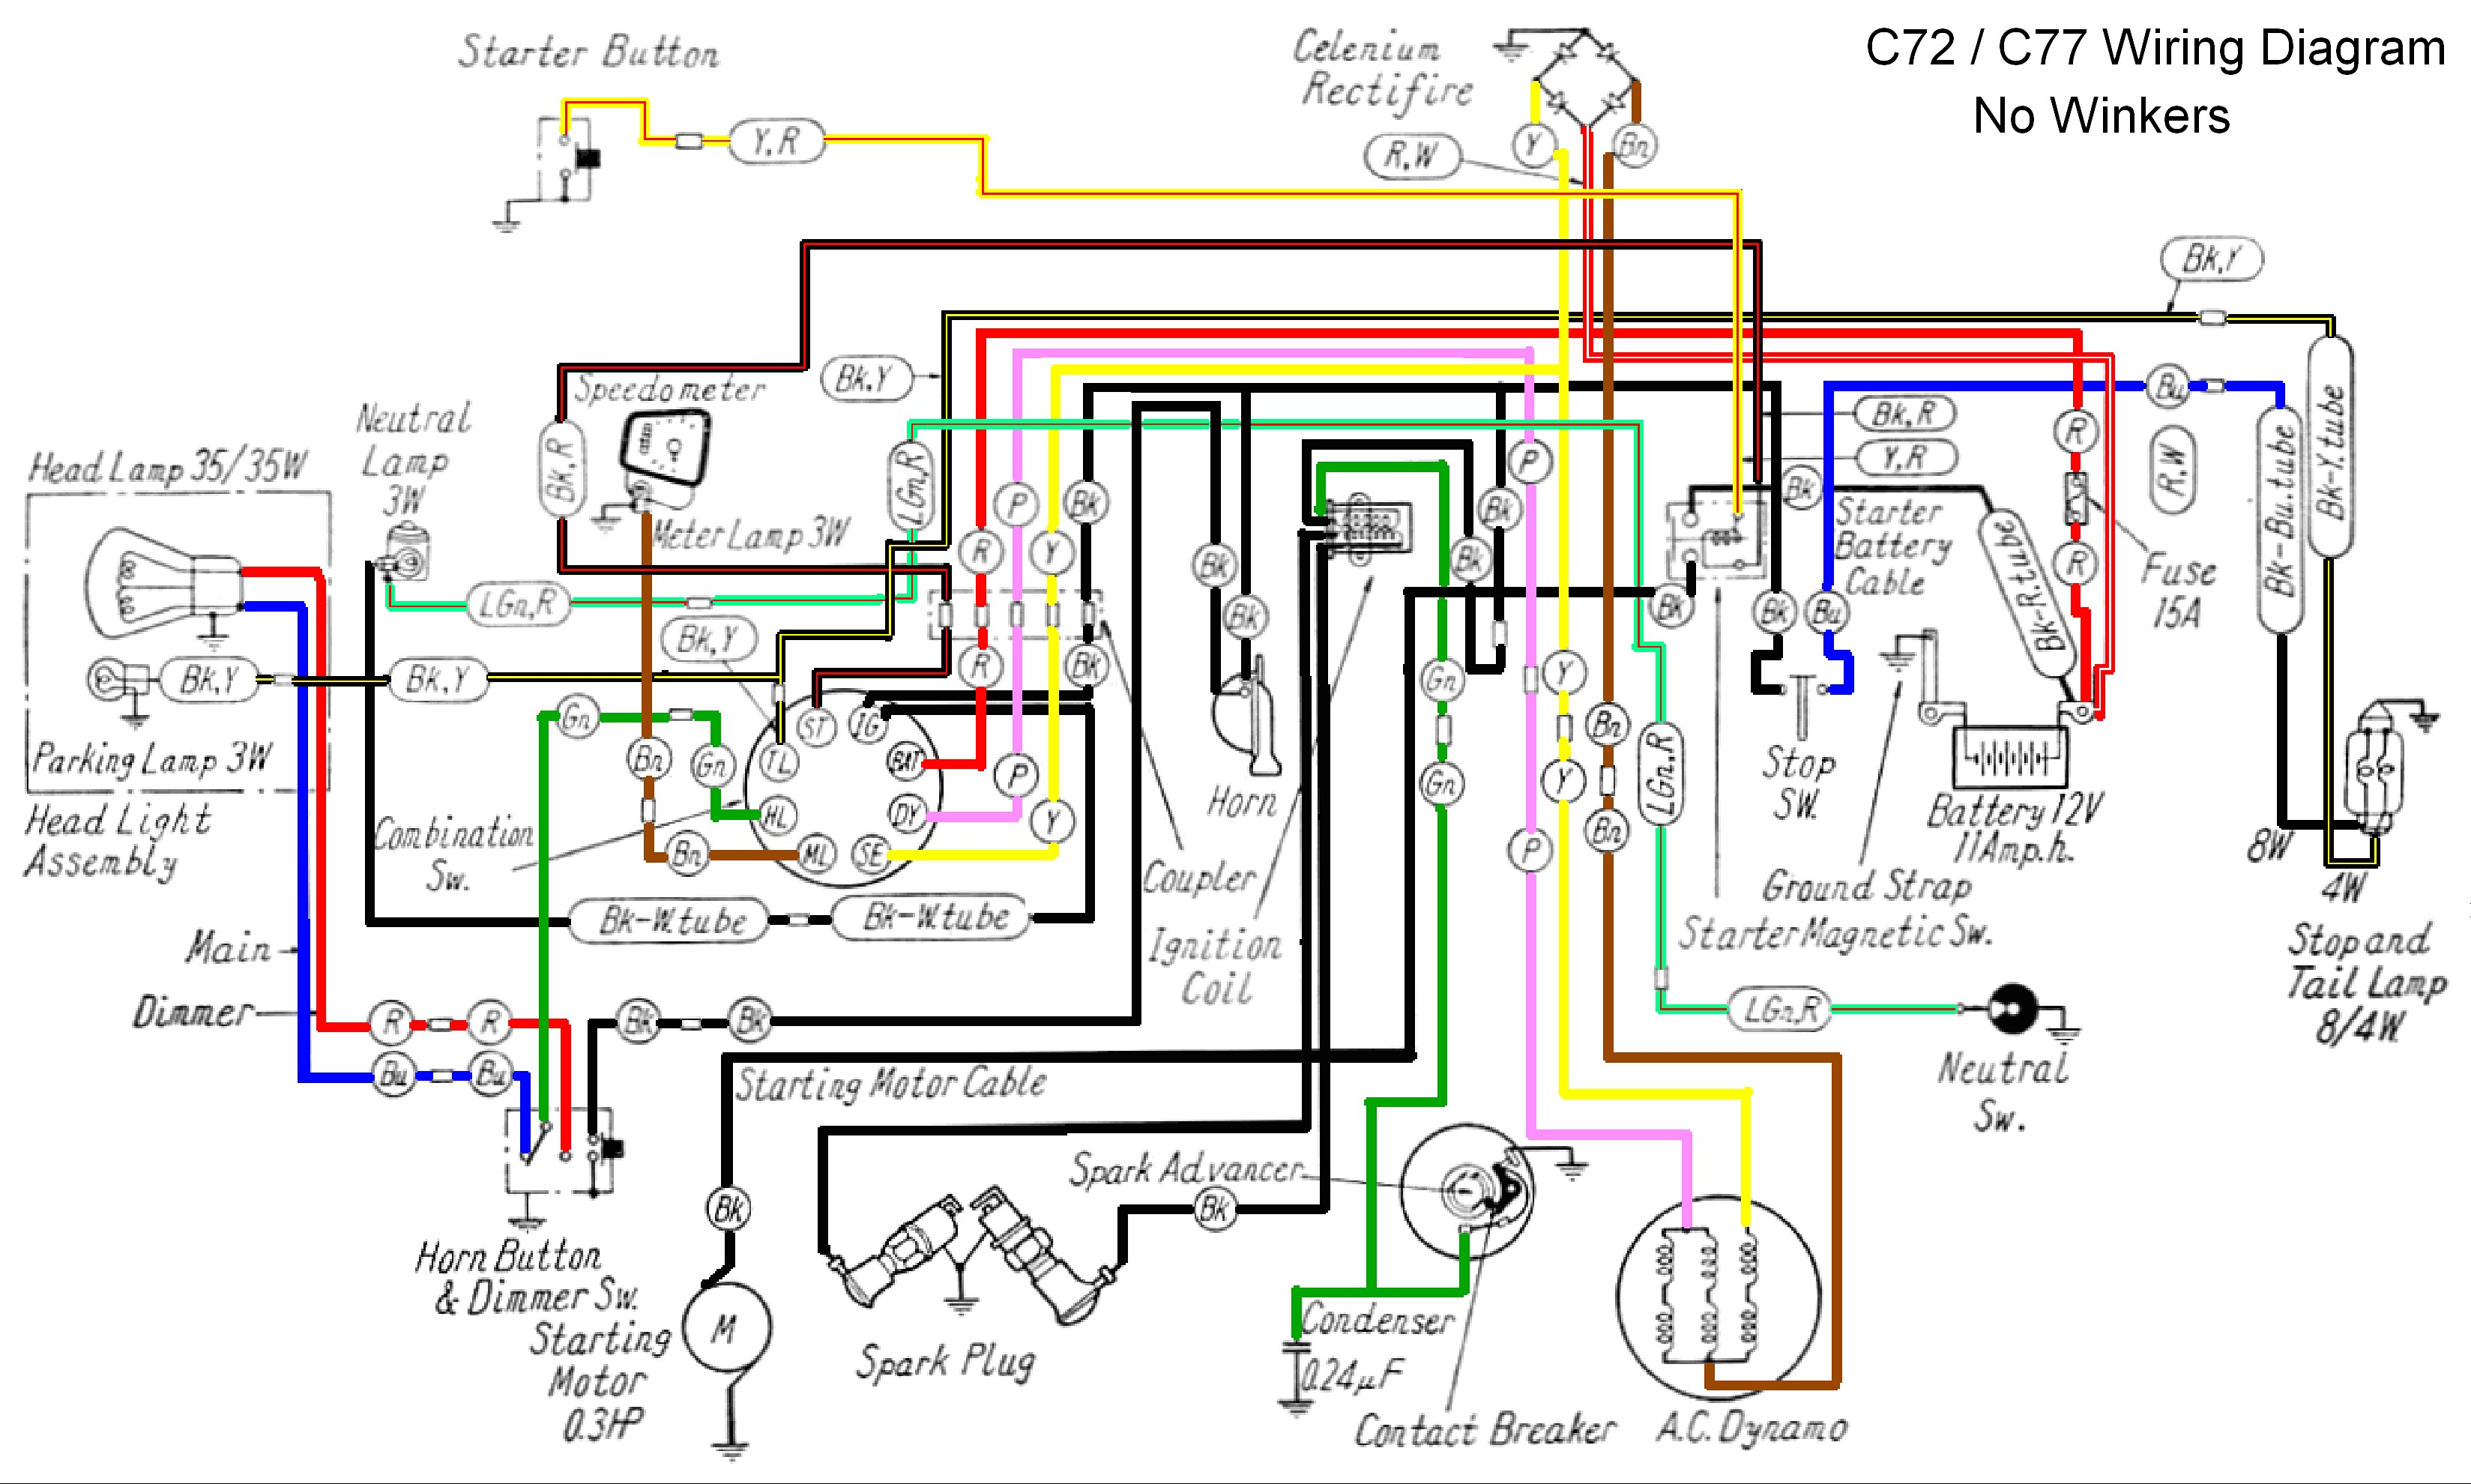 DIAGRAM] Ct90 Ct110 Wiring Diagram FULL Version HD Quality Wiring Diagram -  AVDIAGRAMS.DSIMOLA.ITDsimola.it